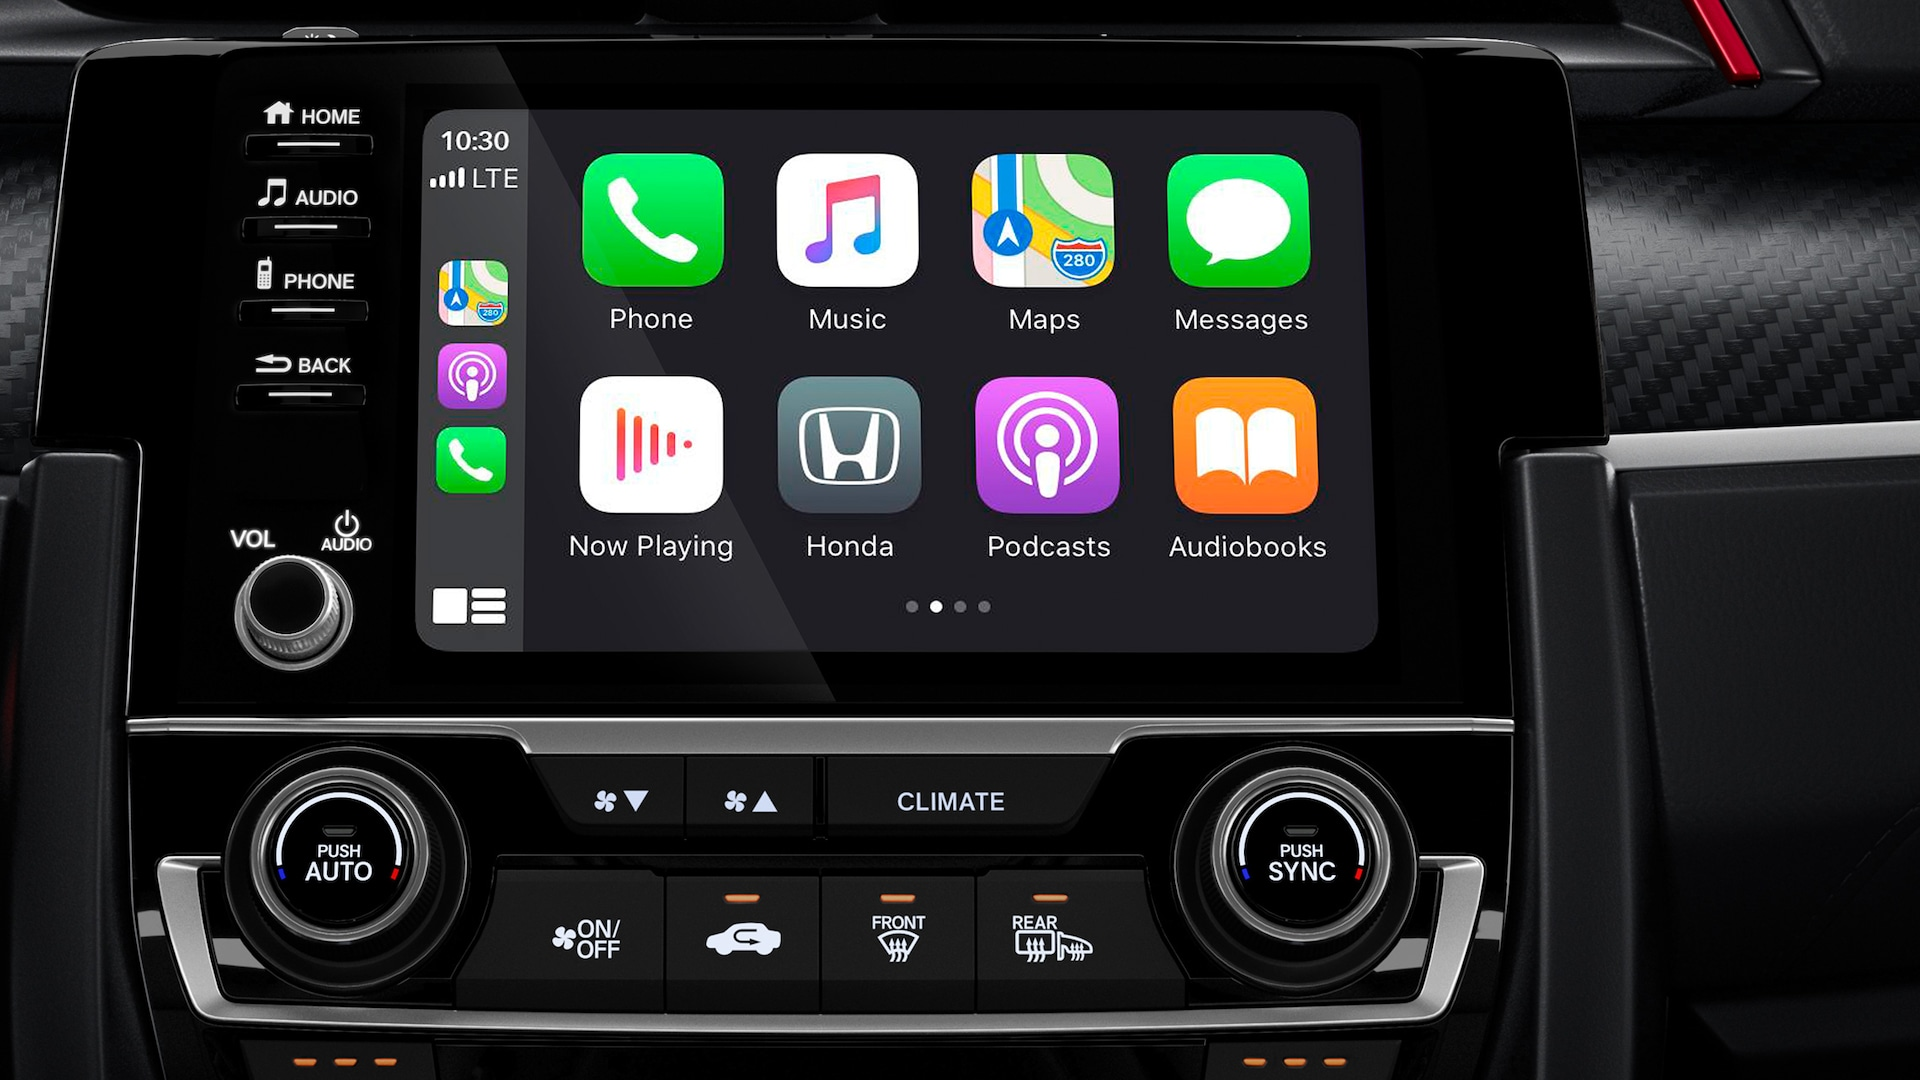 Detalle de Apple CarPlay® en la pantalla táctil de 7 pulgadas del sistema de audio del Honda Civic Si Coupé 2020.